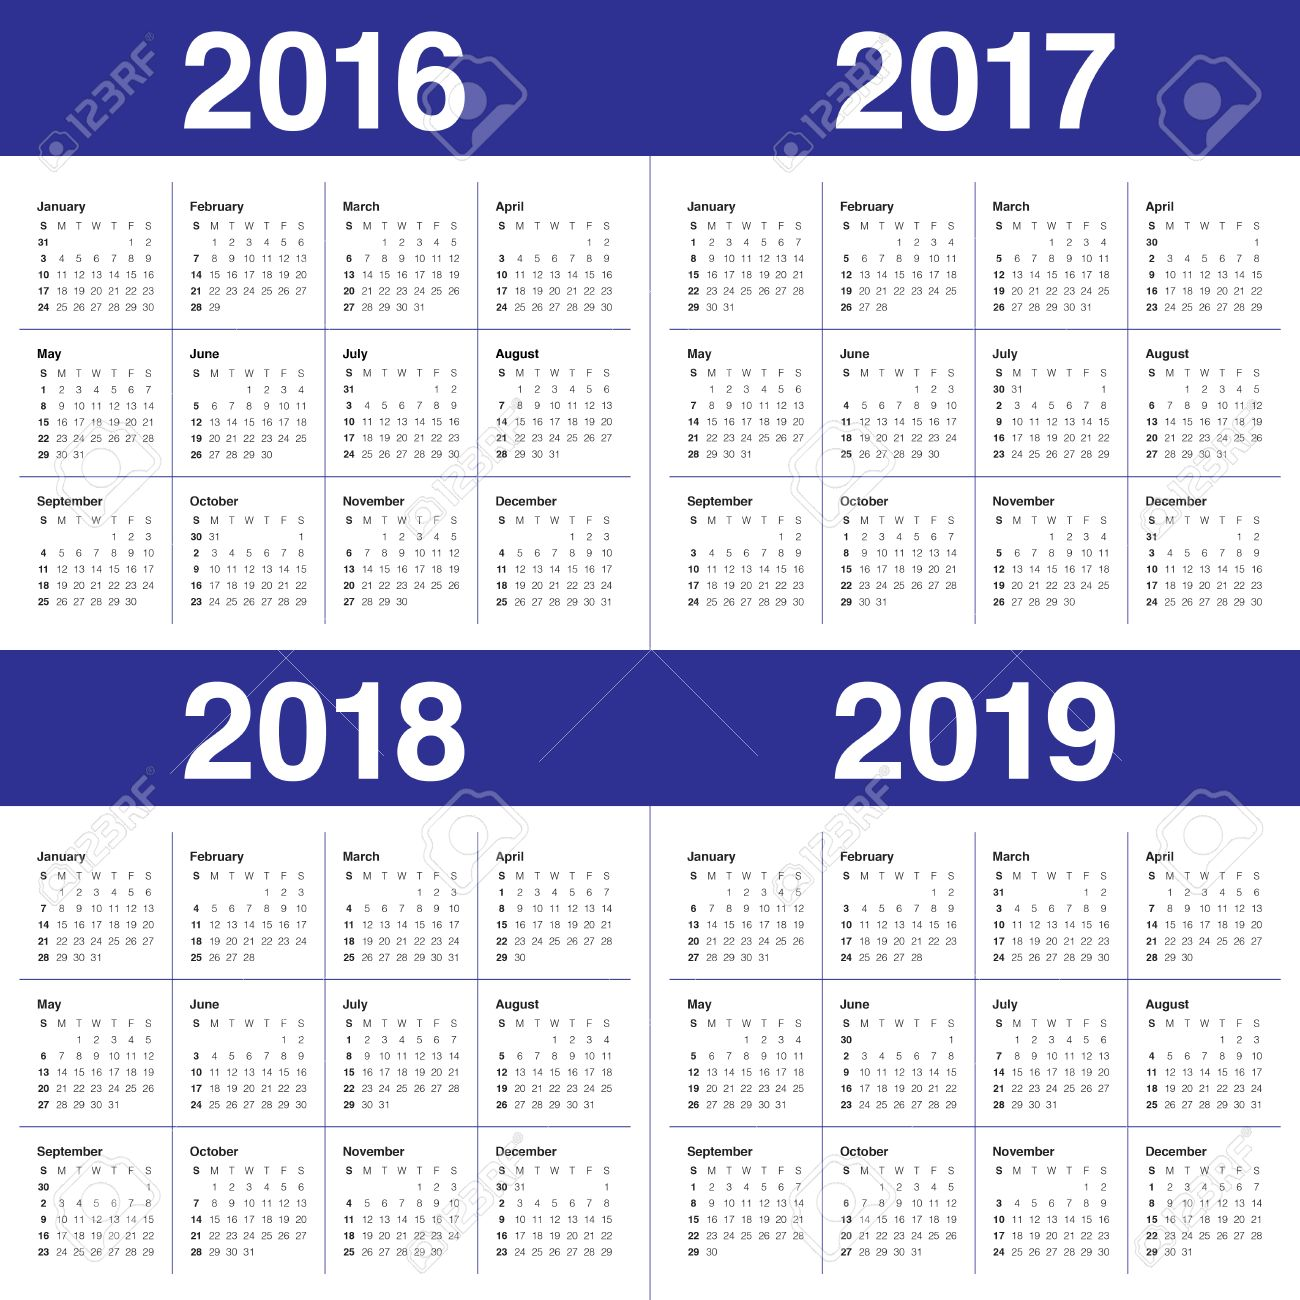 2019 2016 2019 Calendar Simple Calendar For 2016 2017 2018 2019 Royalty Free Cliparts